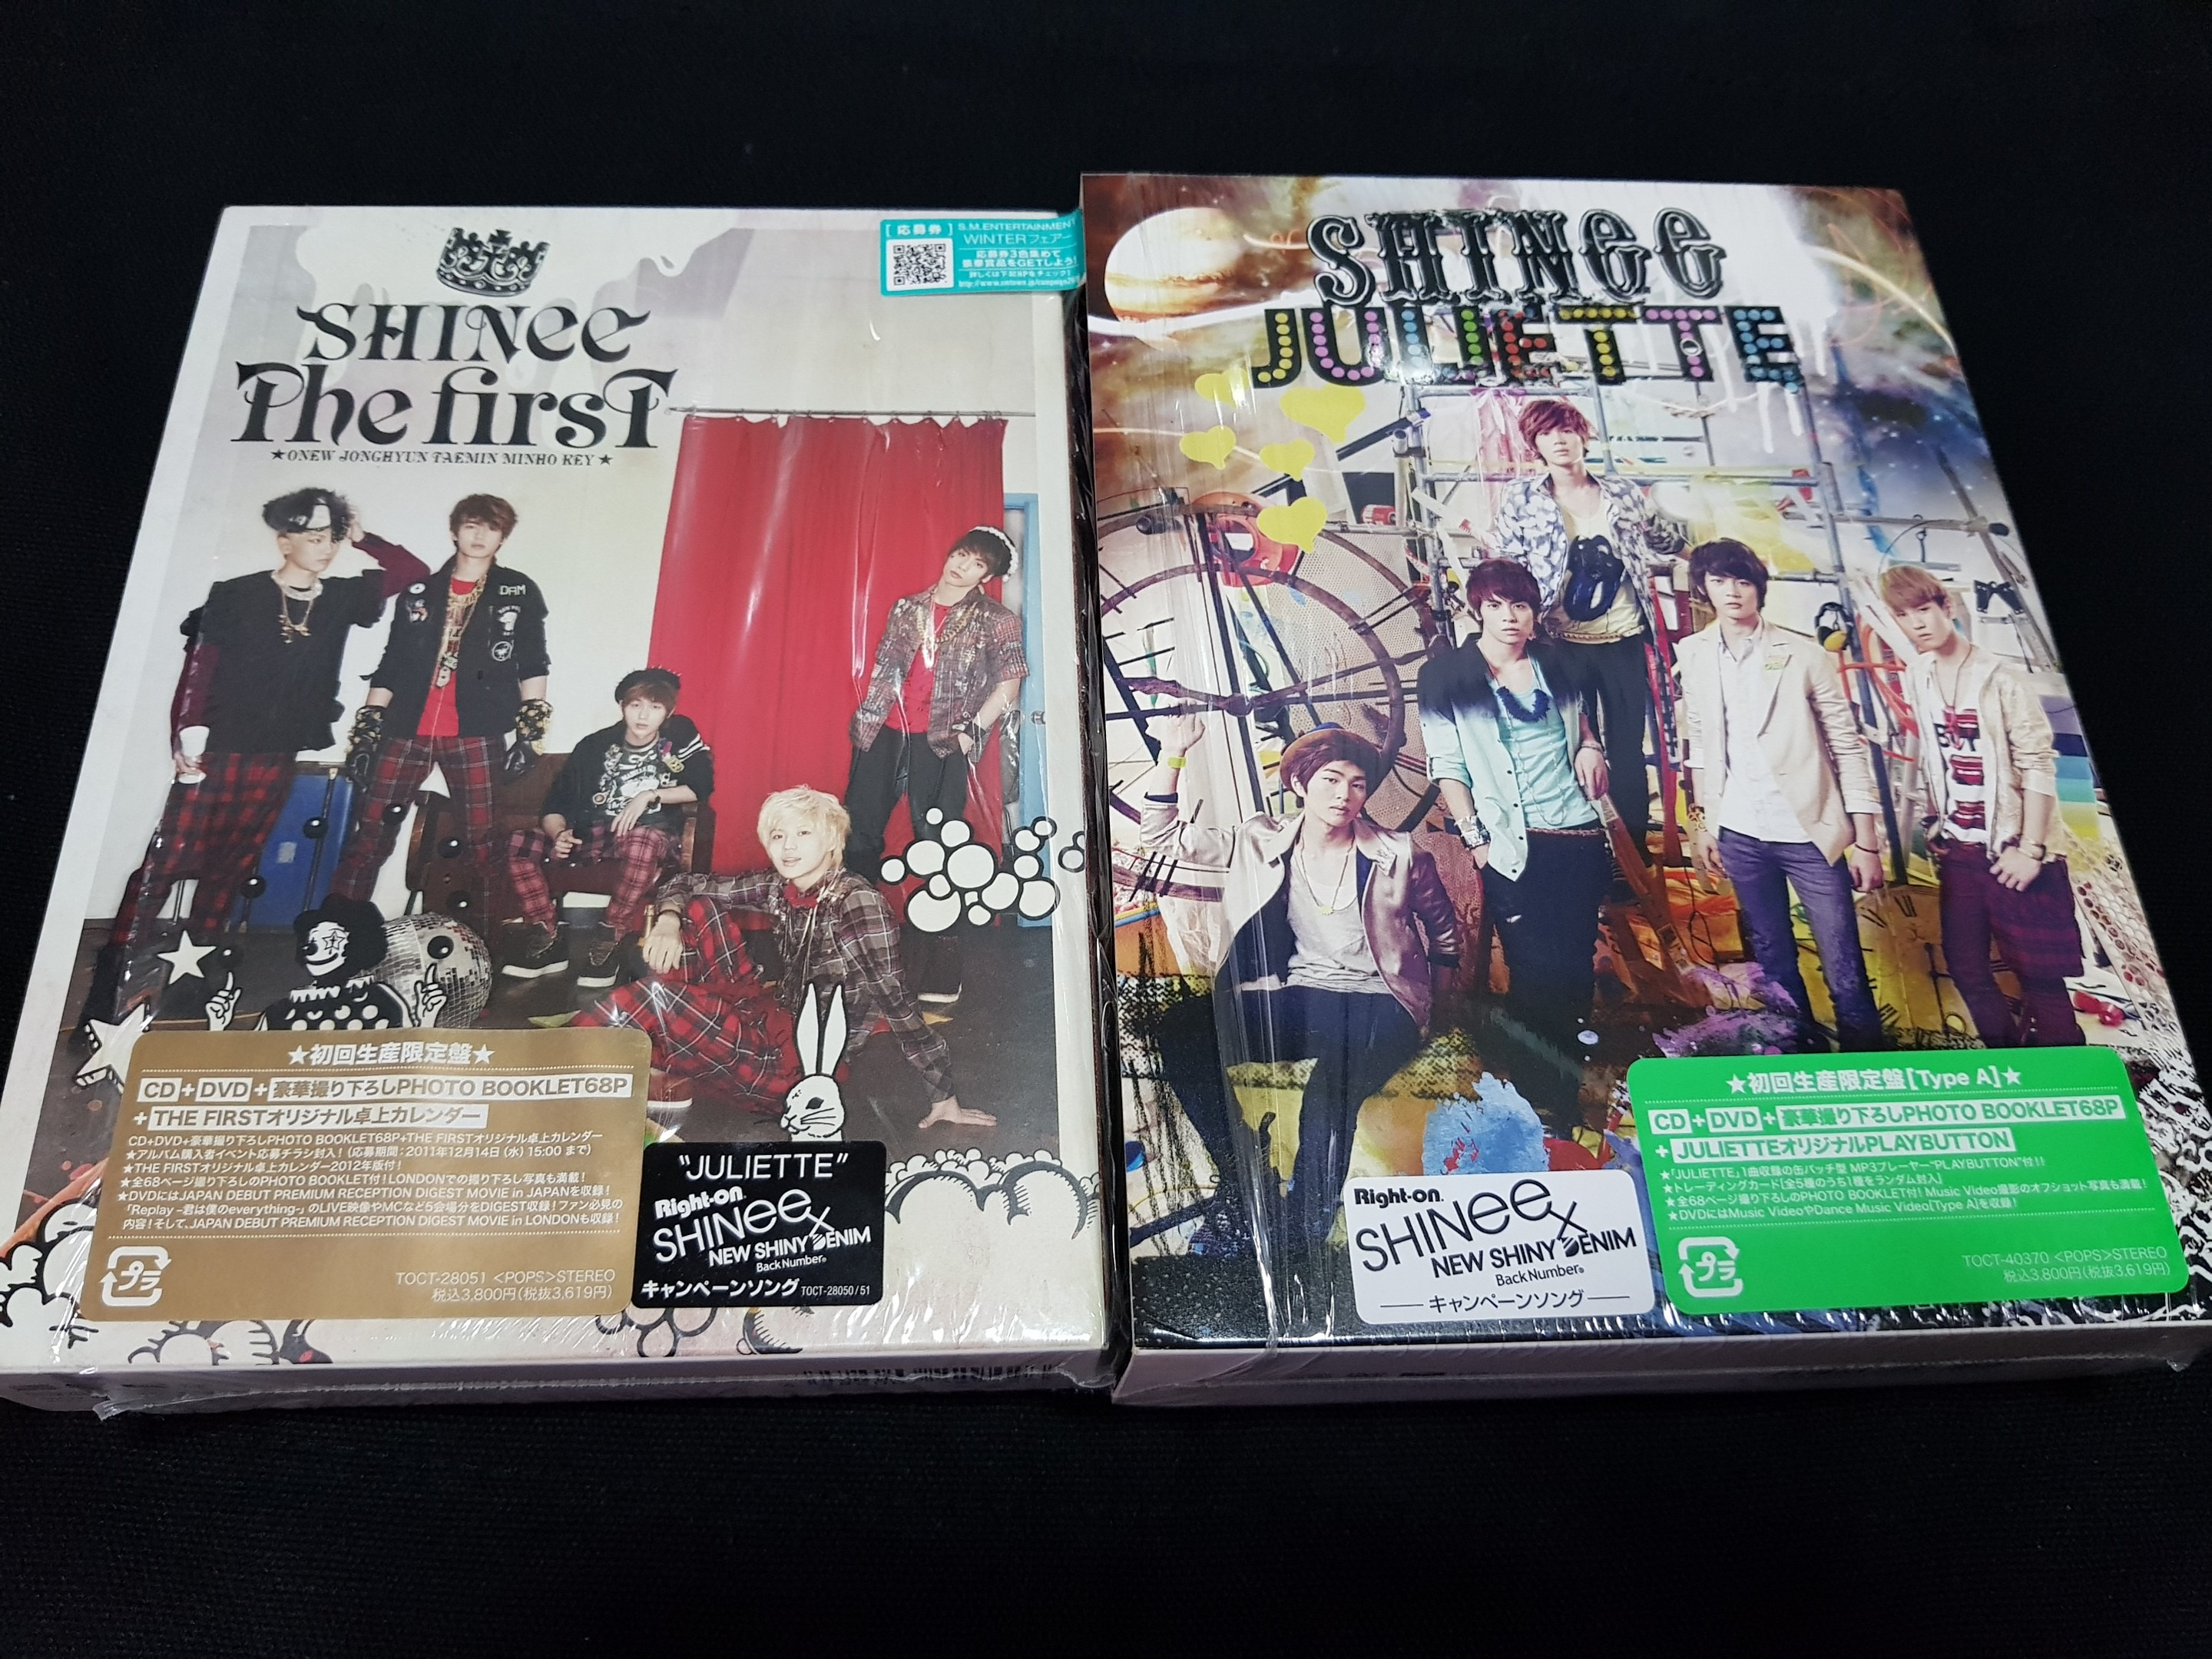 [OFFICIAL] SHINee Japanese Album & Single with DVD